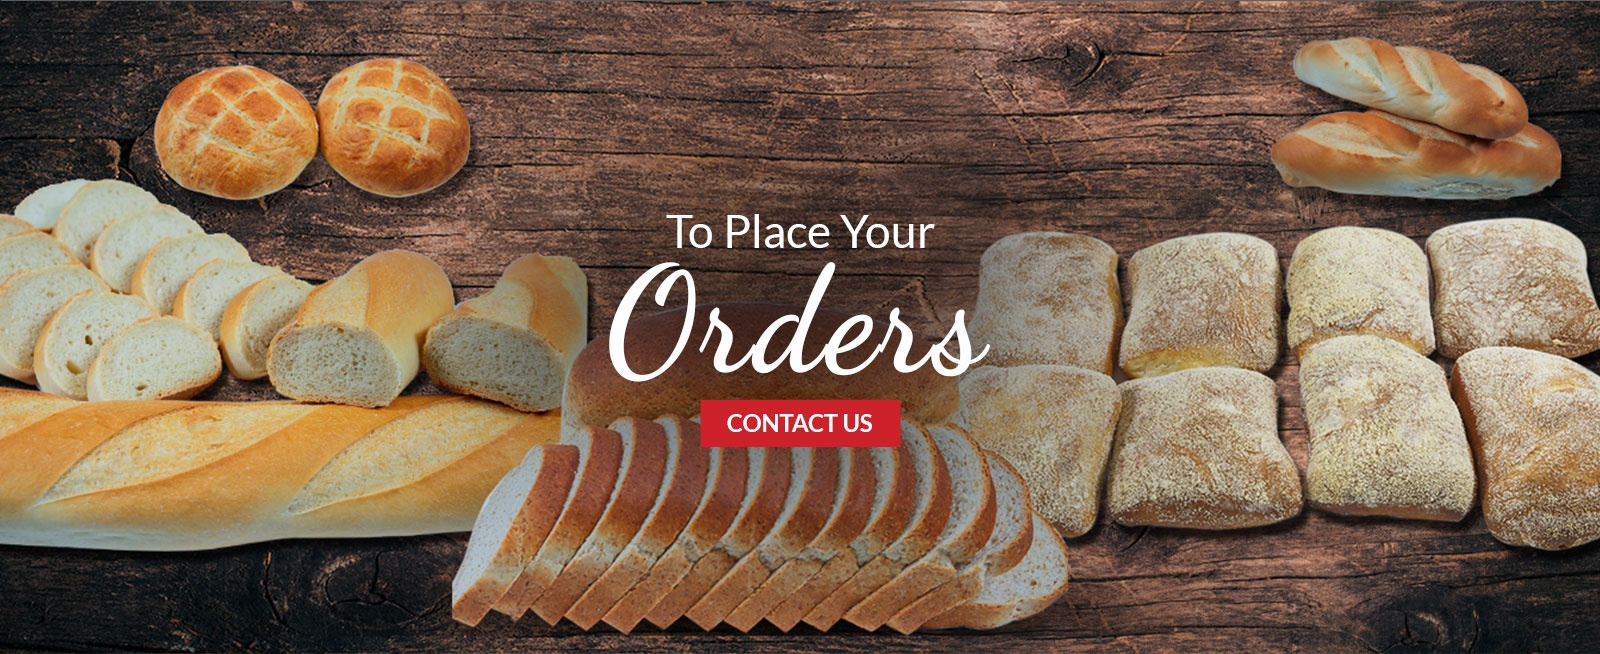 To Place Your Orders for Breads - Contact Us at The Brick Oven Bakery in Burlington ON